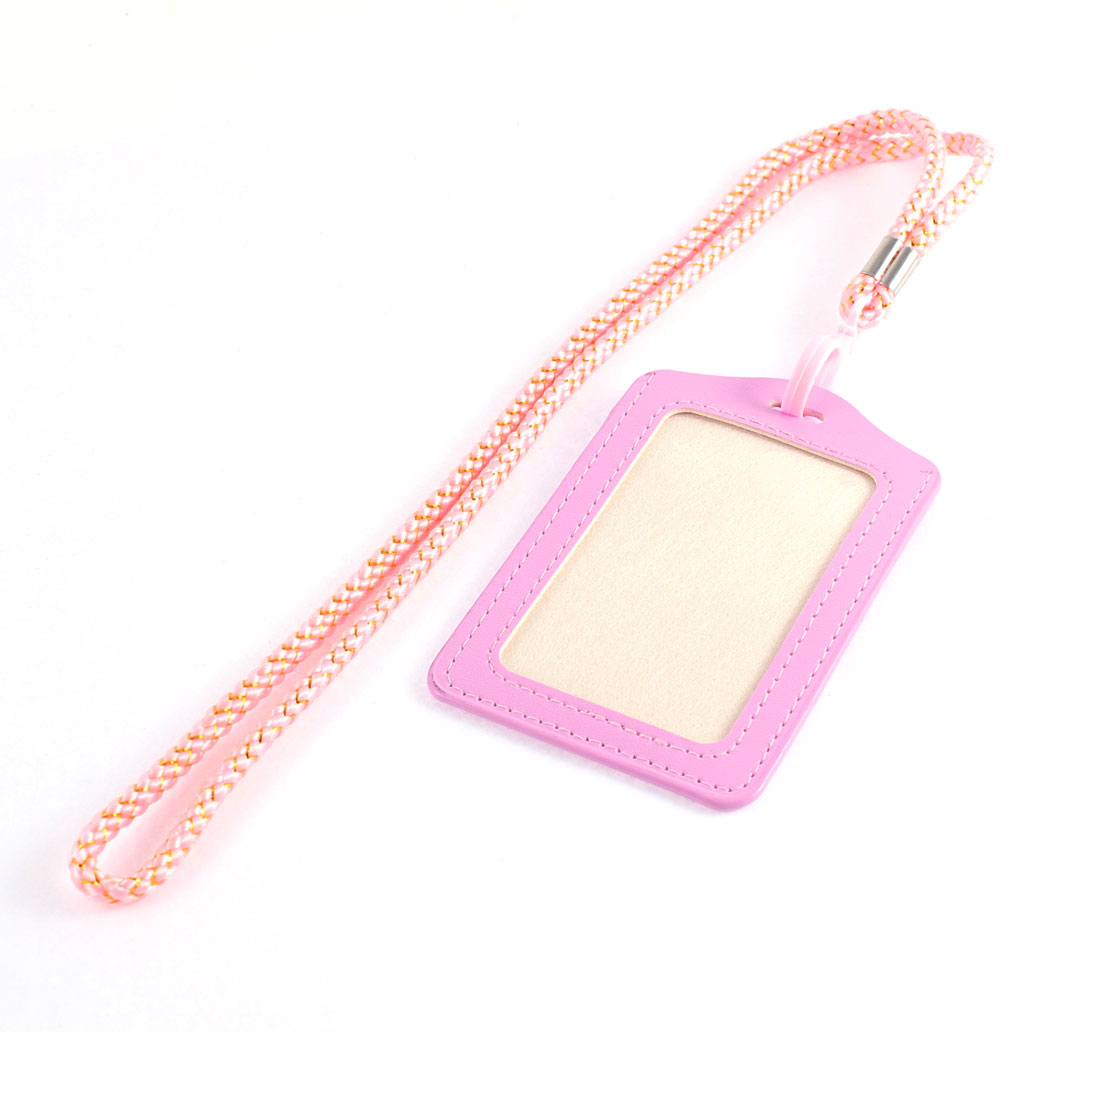 School Office Faux Leather Vertical Business ID Work Card Badge Holder w Neck Strap Lanyard Pink